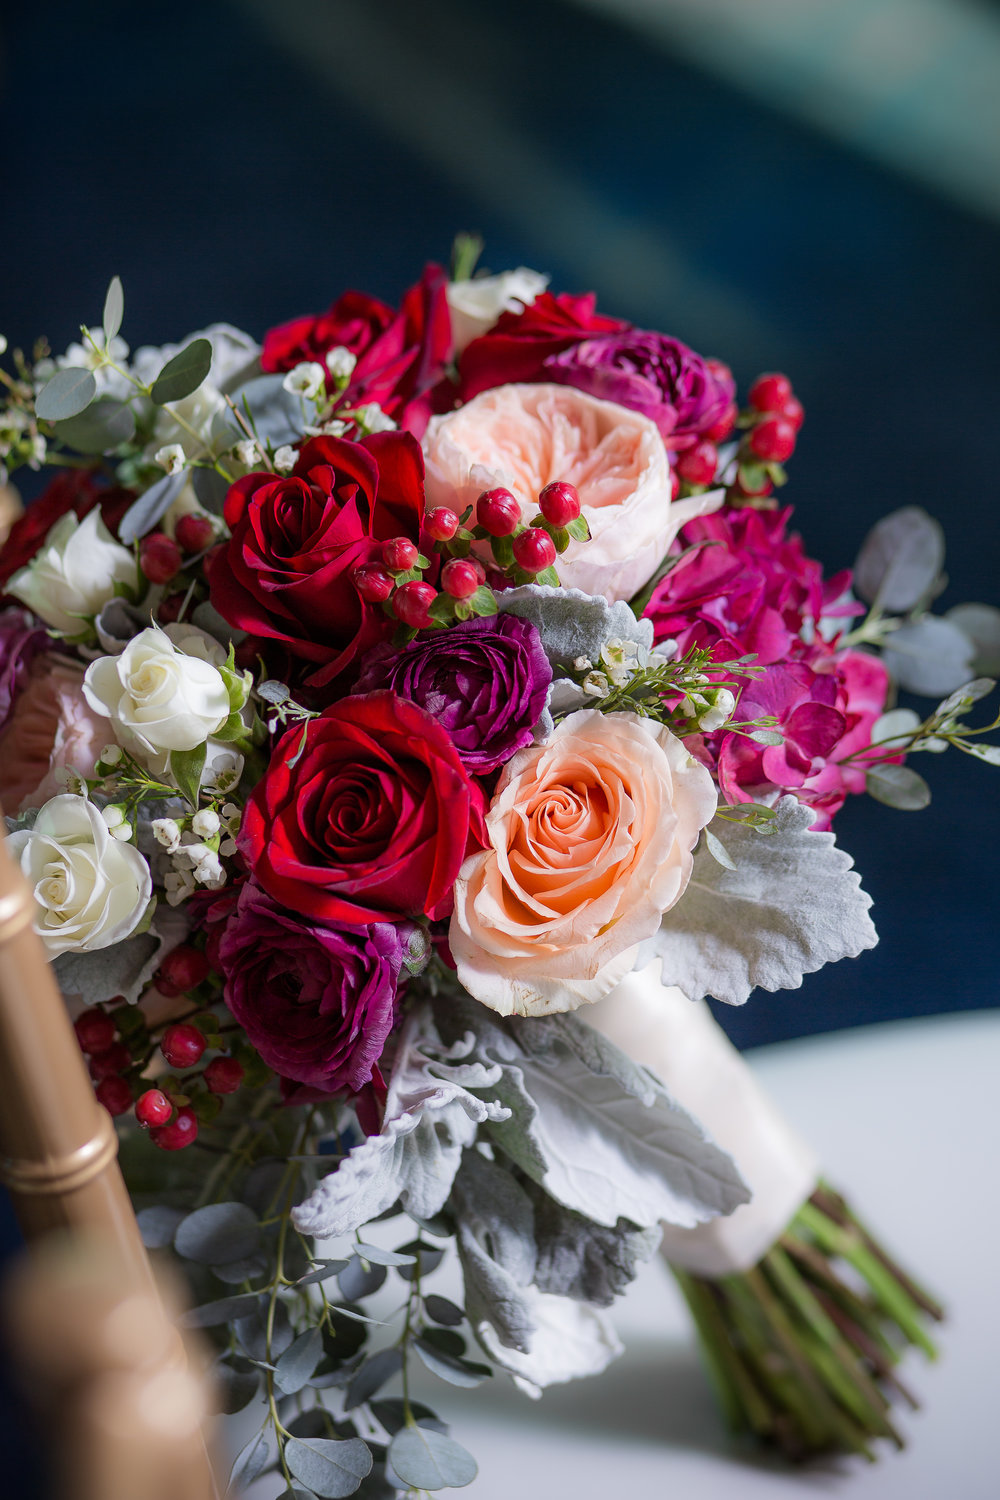 Red and fuschia bridal bouquet for wedding reception.   Styled Wedding Shoot inspired by French Blue by   Las Vegas Wedding Planner  Andrea Eppolito .  Photography by   Rebecca Marie  .  Floral and Decor by   By Dzign  .